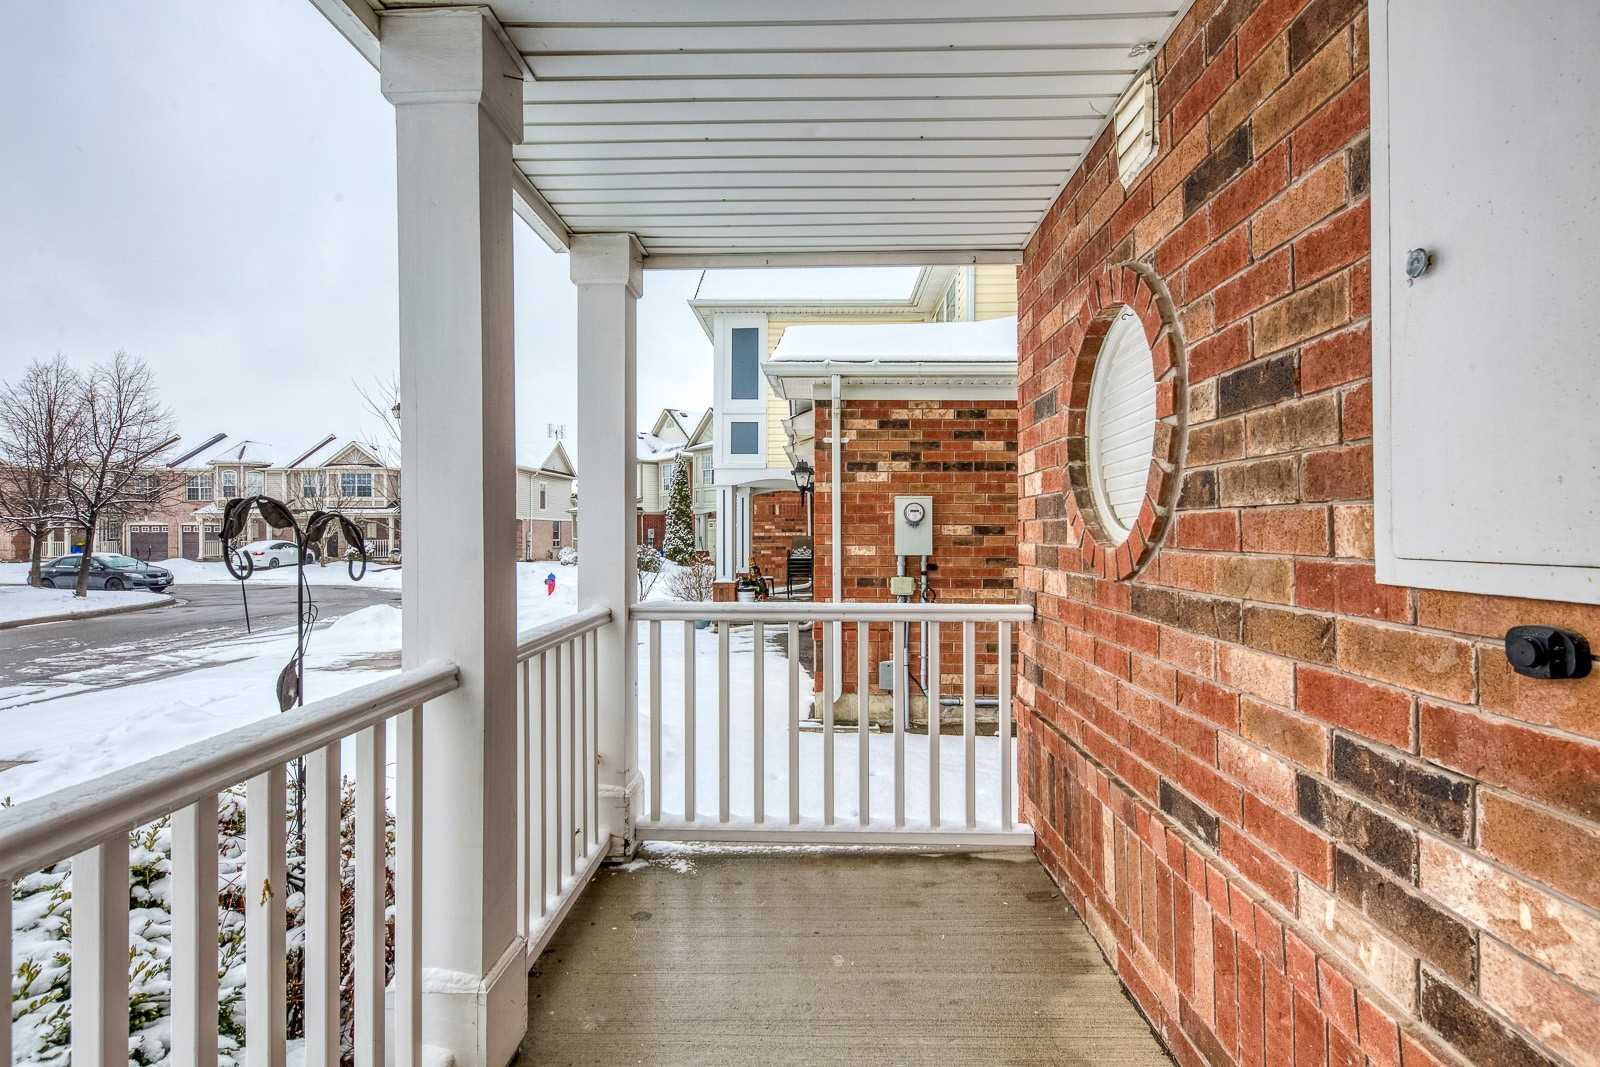 Image 12 of 20 showing inside of 3 Bedroom Att/Row/Twnhouse 2-Storey house for sale at 682 Edwards Ave, Milton L9T6B3